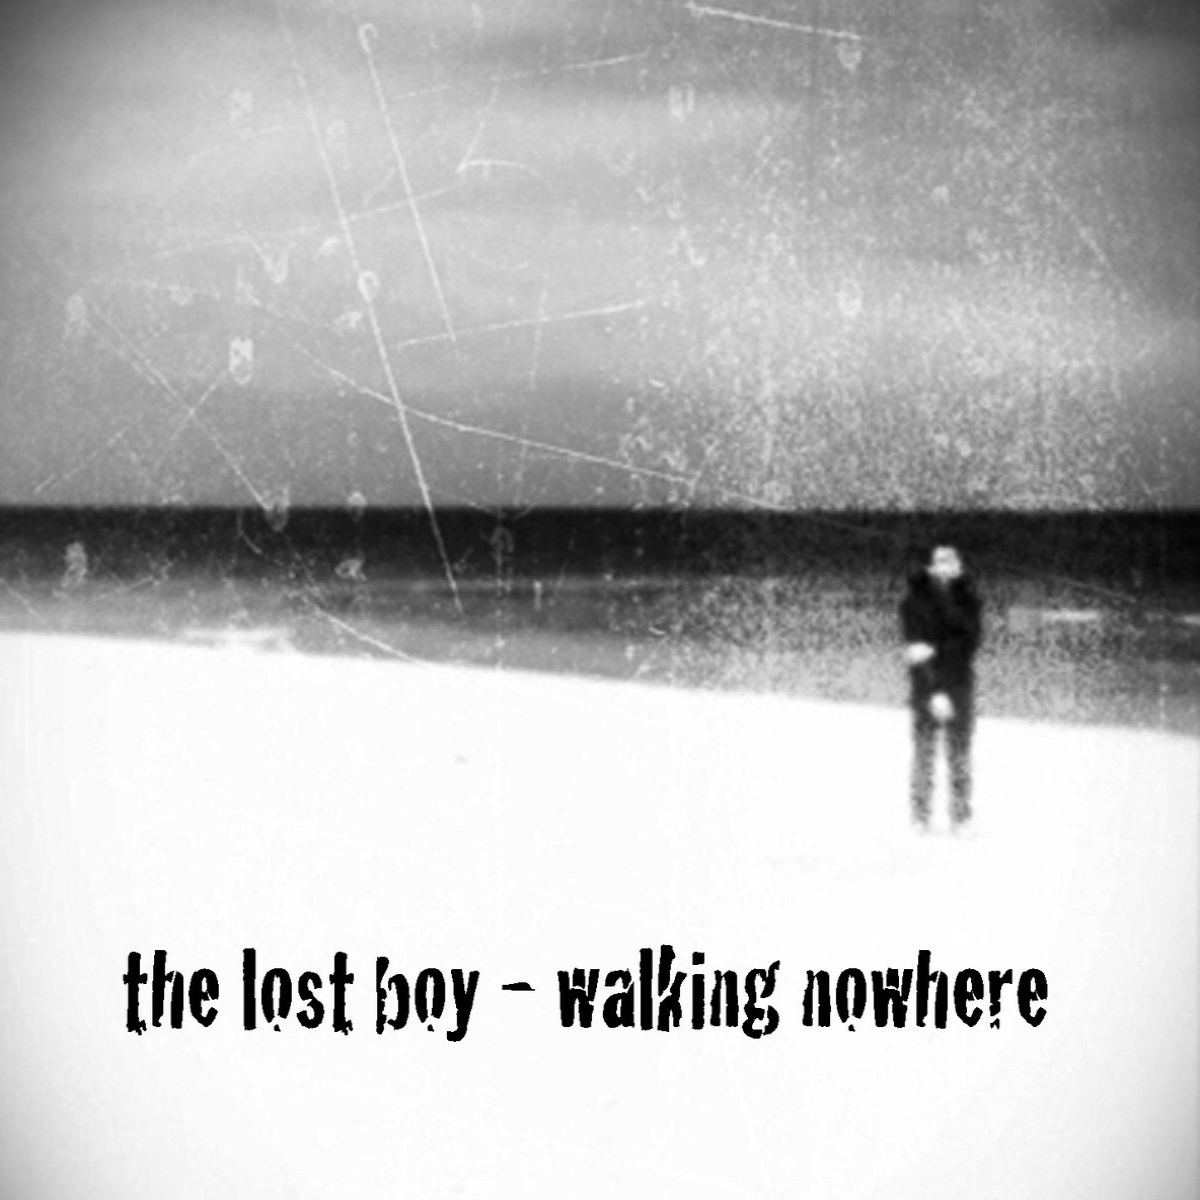 The Lost Boy, Walking Nowhere